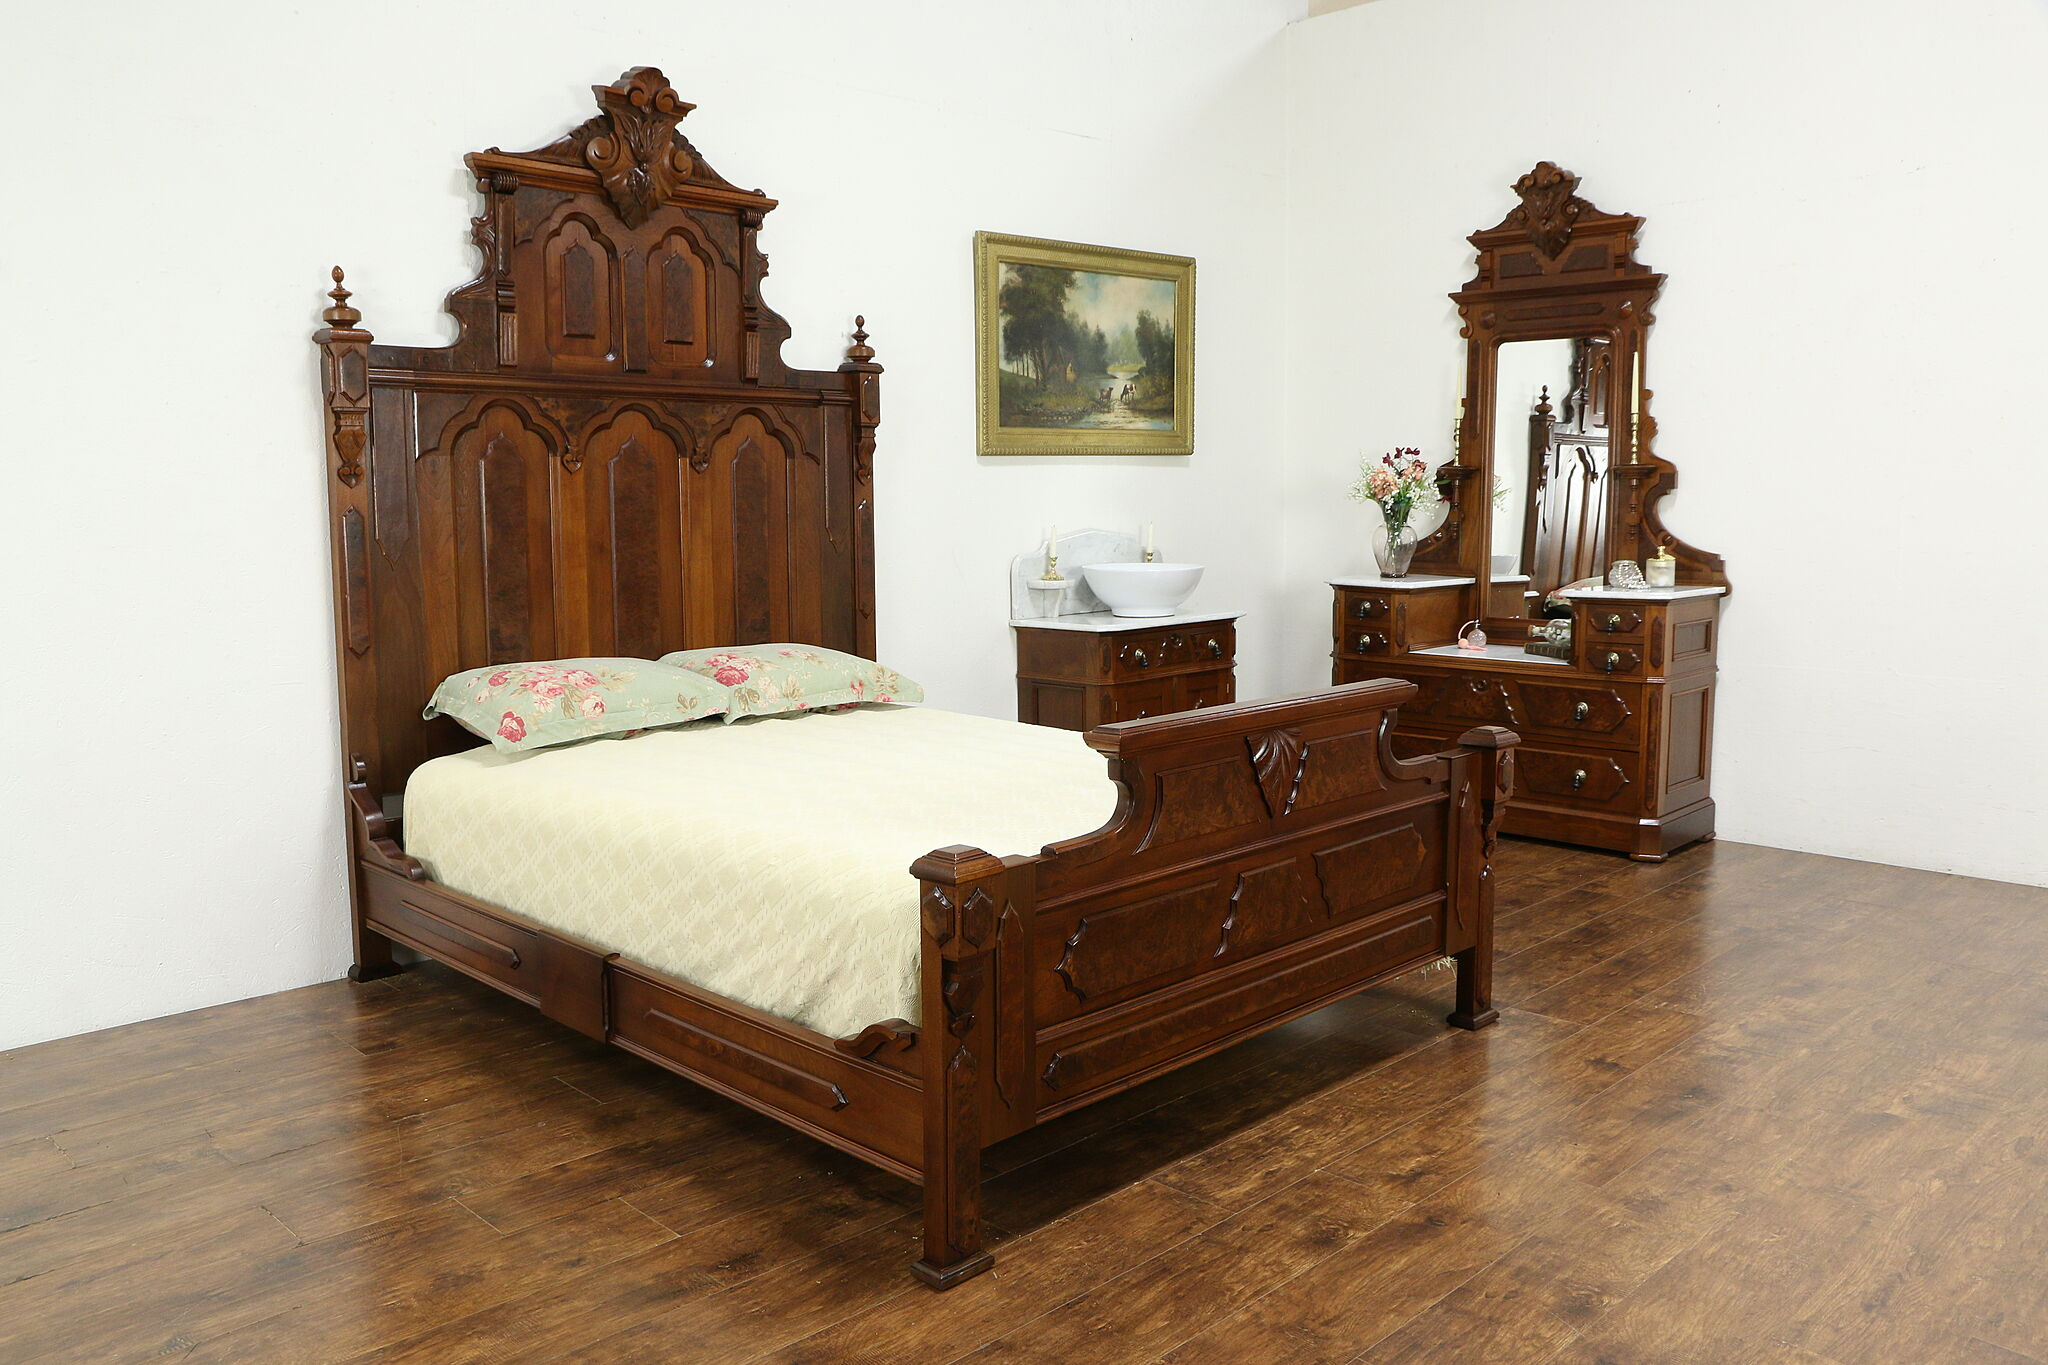 Victorian Antique Walnut Bedroom Set Queen Size Bed Marble Tops 33760 Harp Gallery Antiques Furniture